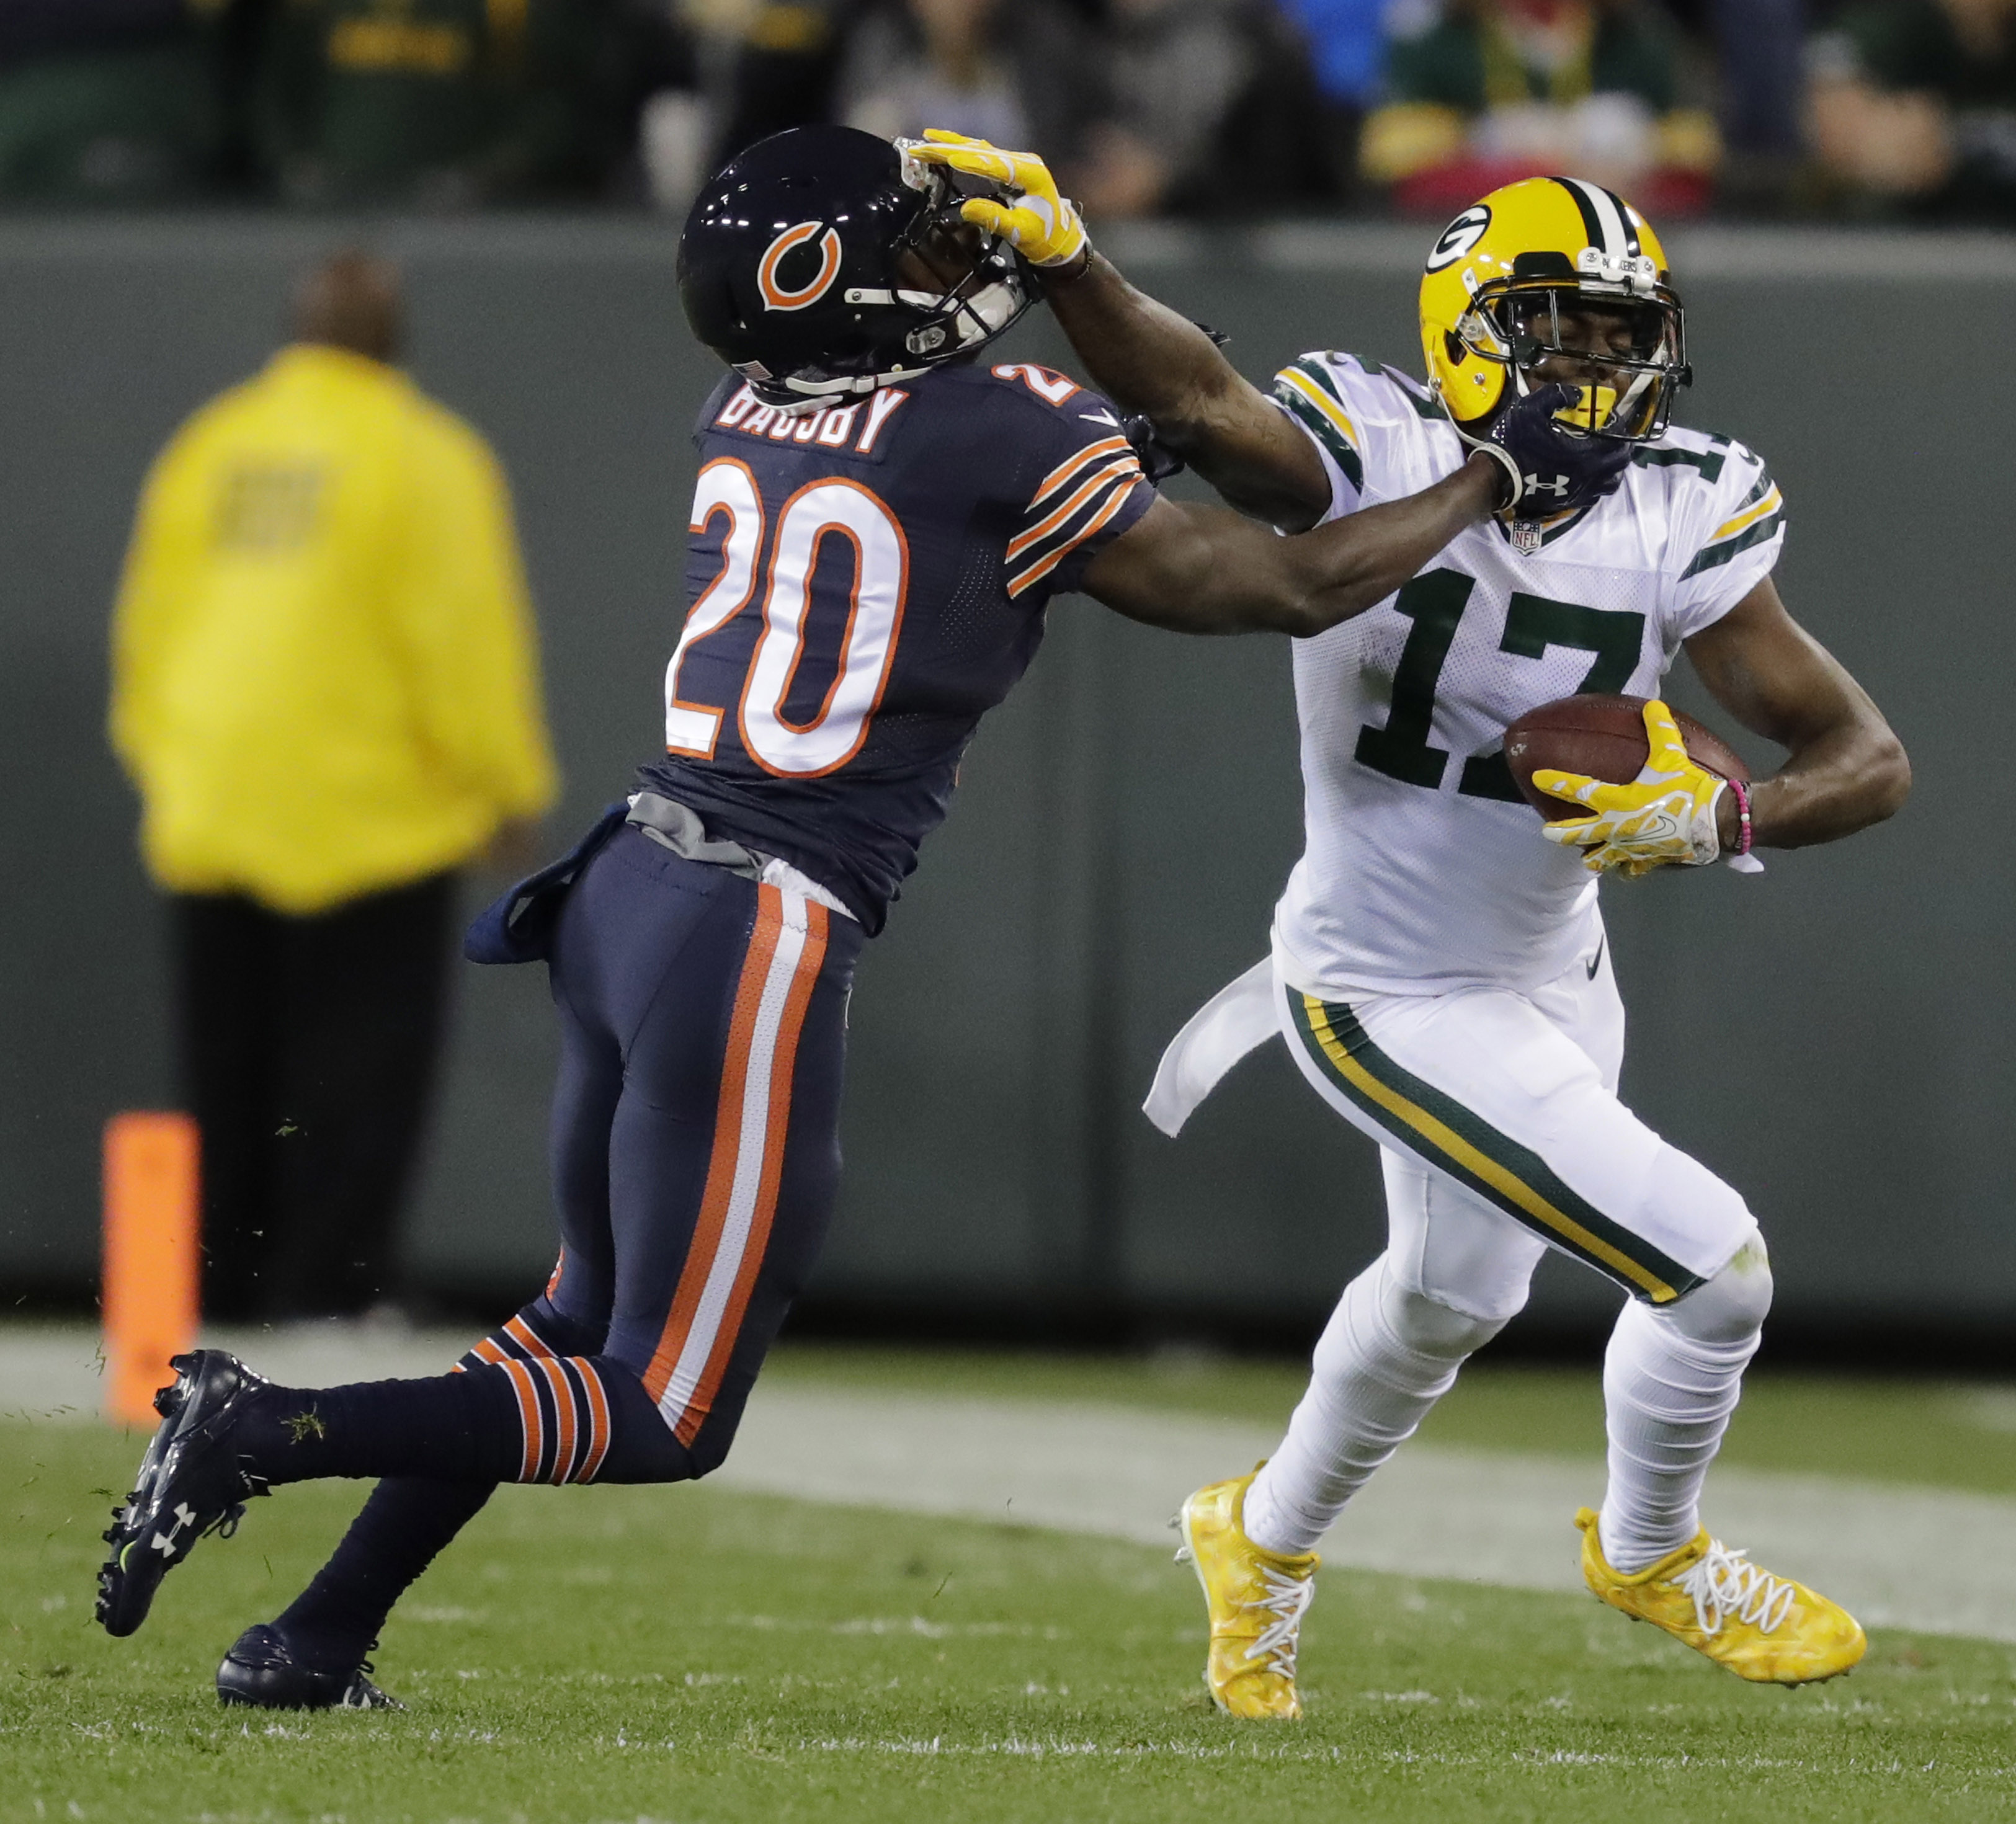 9621777-nfl-chicago-bears-at-green-bay-packers